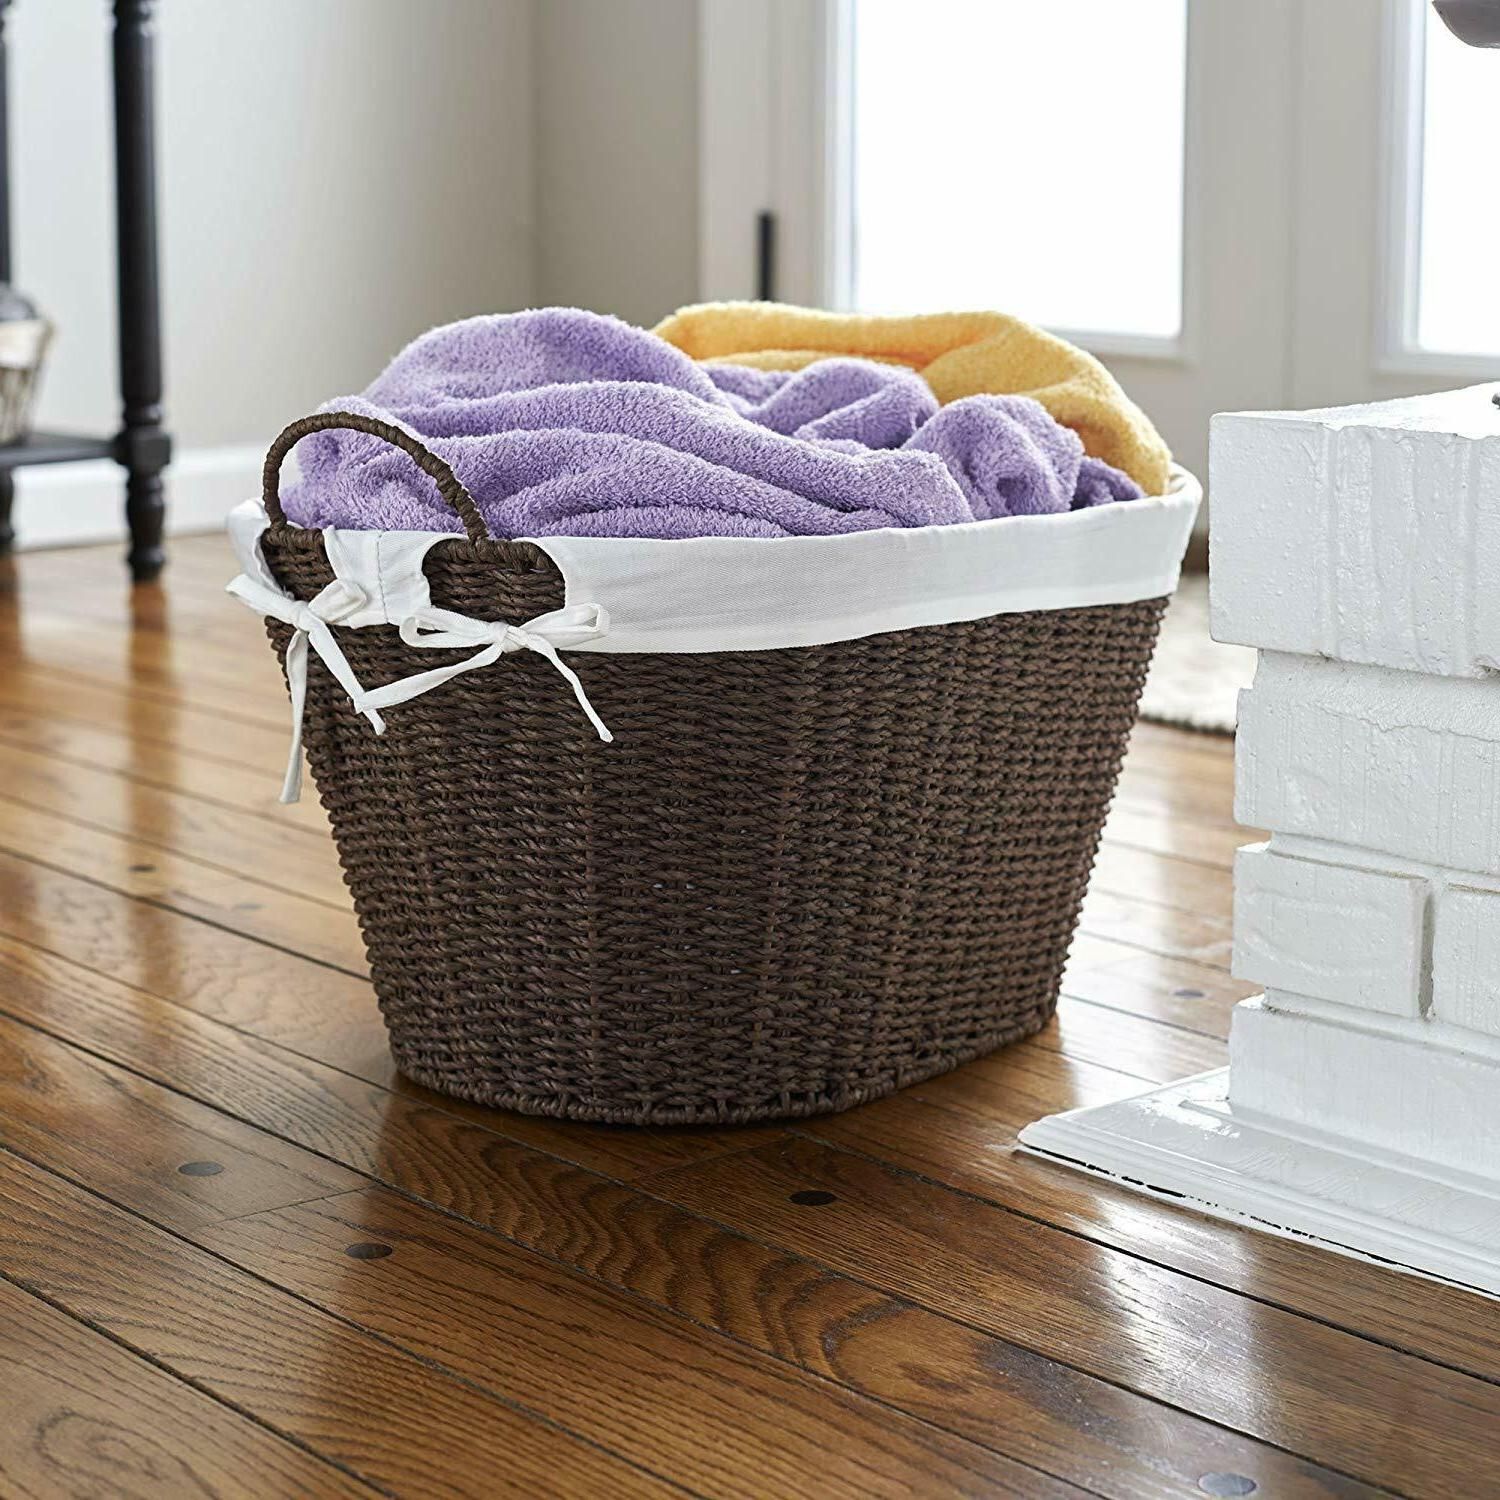 wicker laundry basket small with handles compact